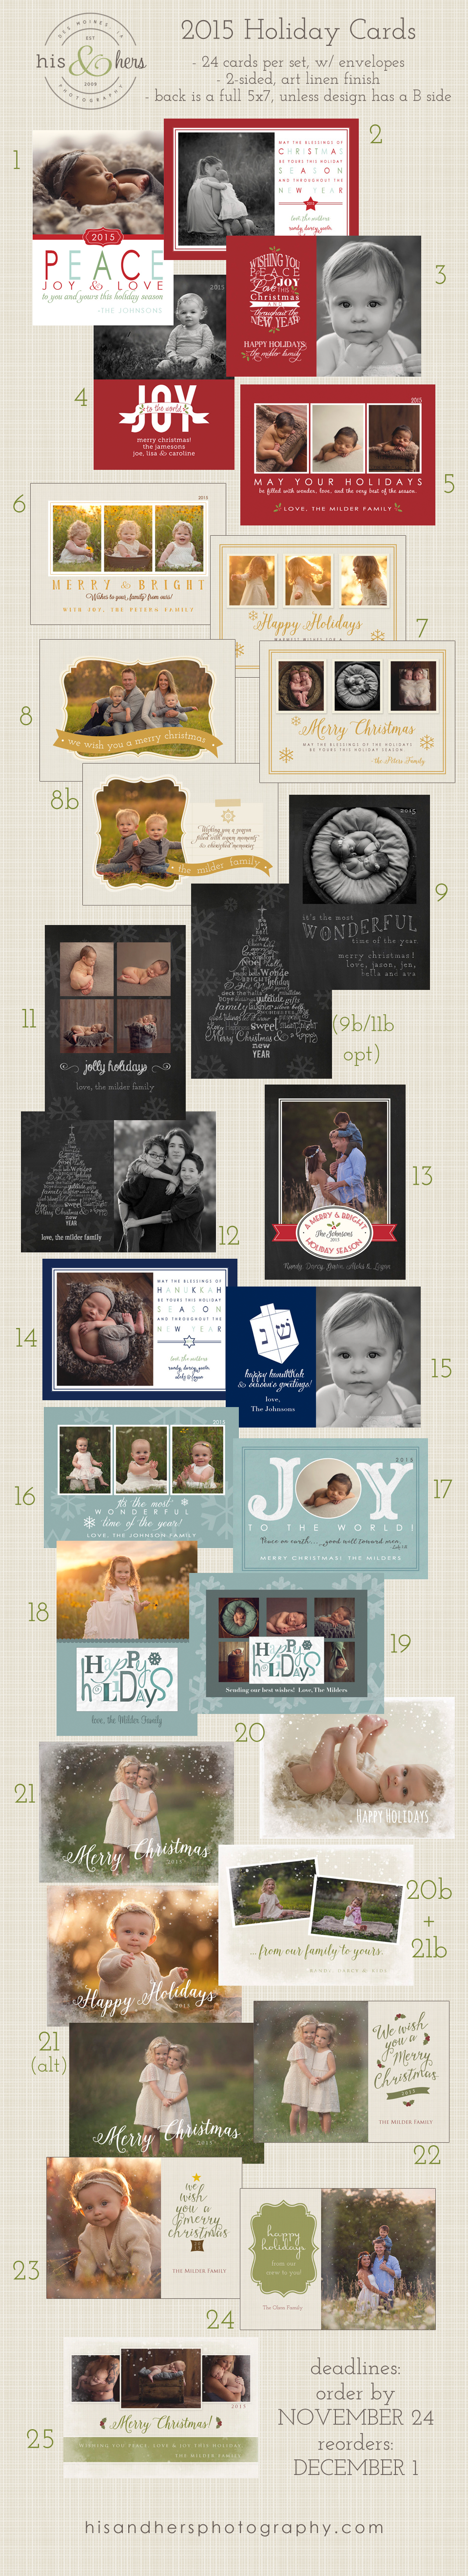 2015 Holiday Cards